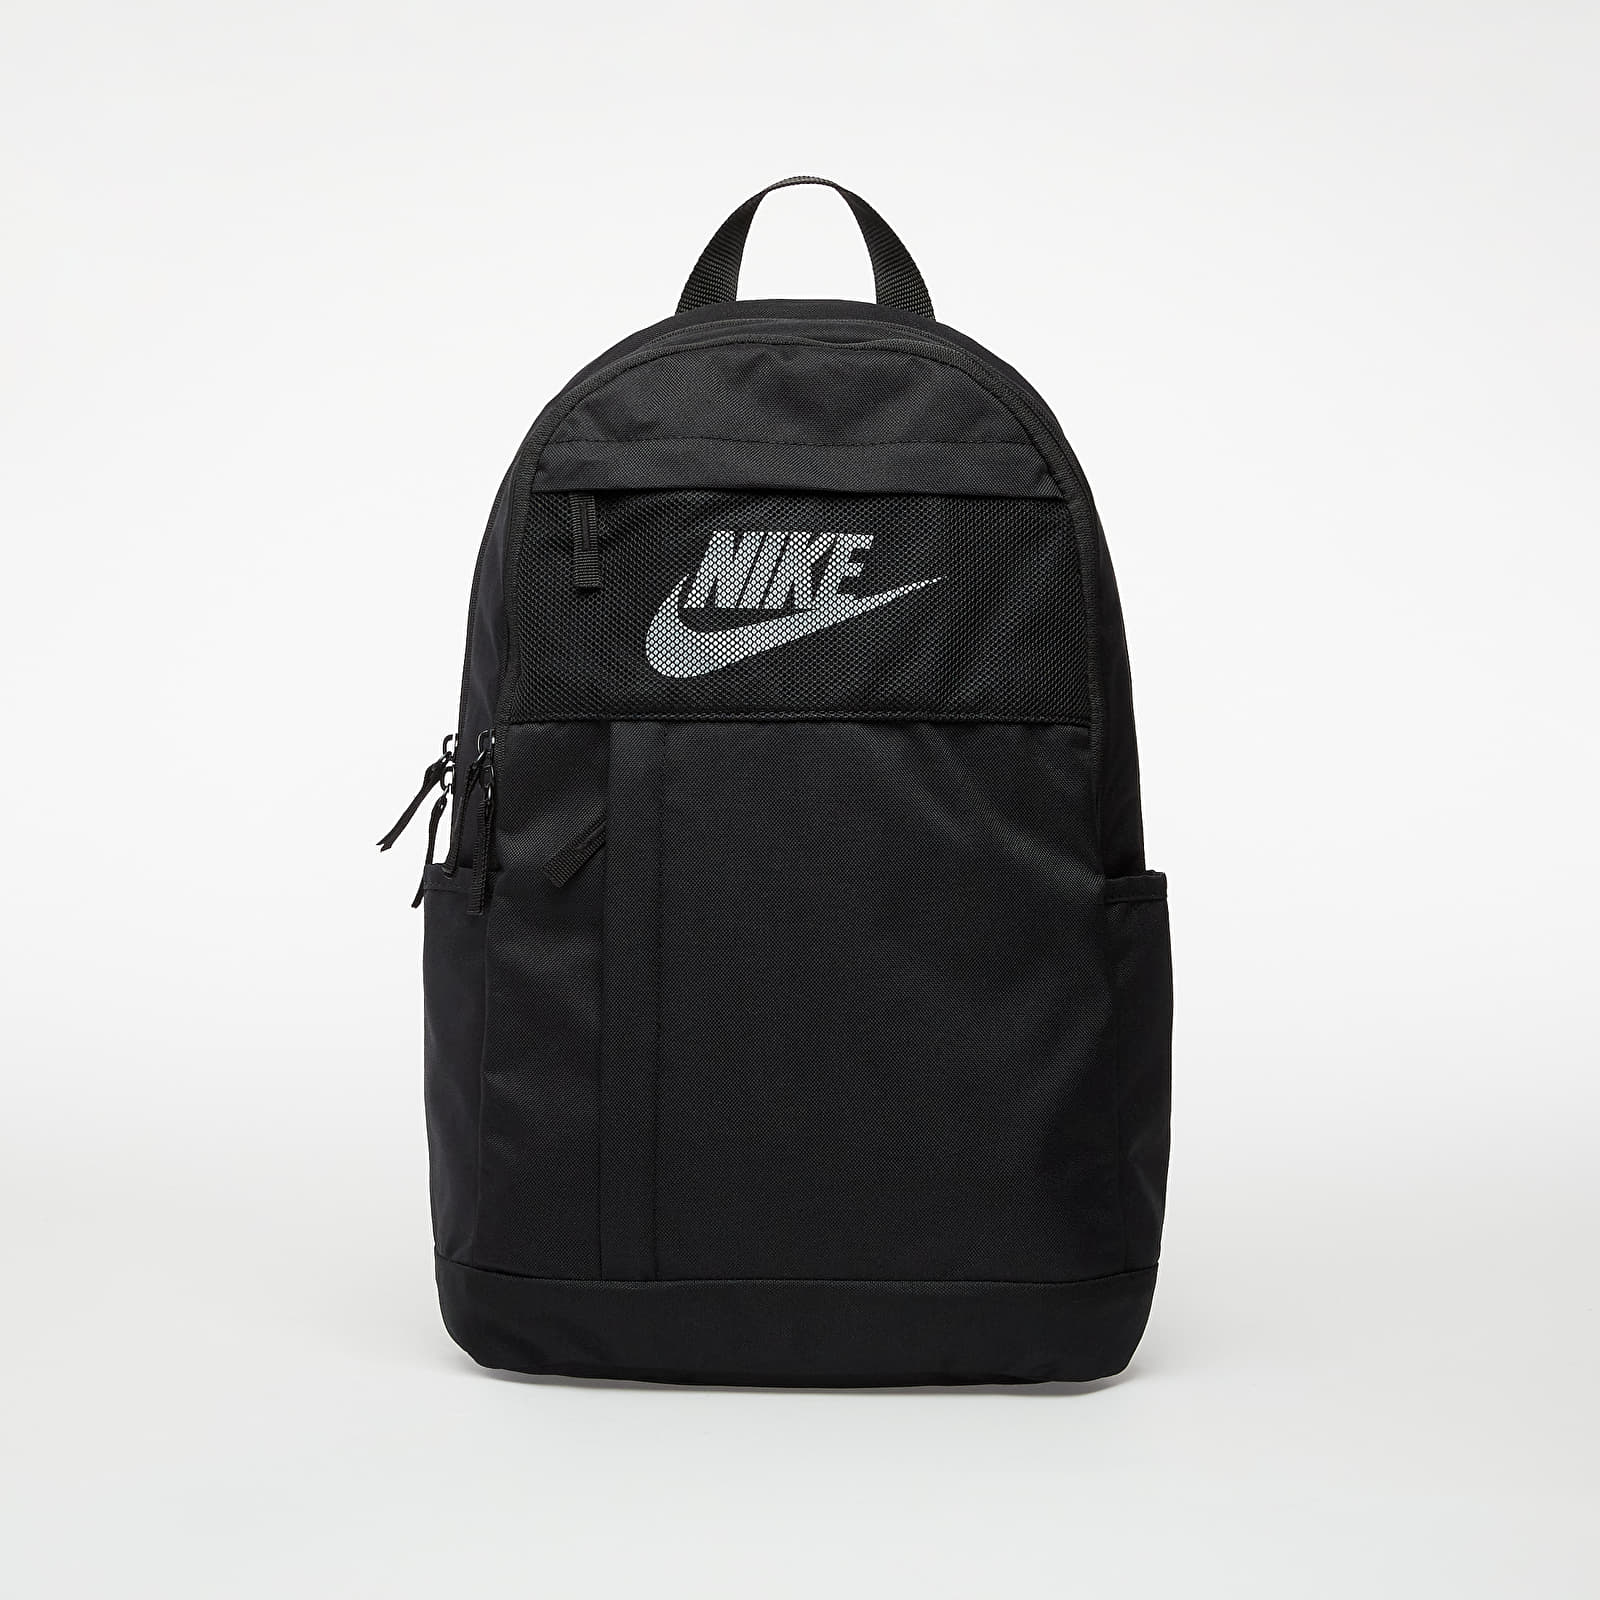 Ruksaci Nike Elemental LBR Backpack Black